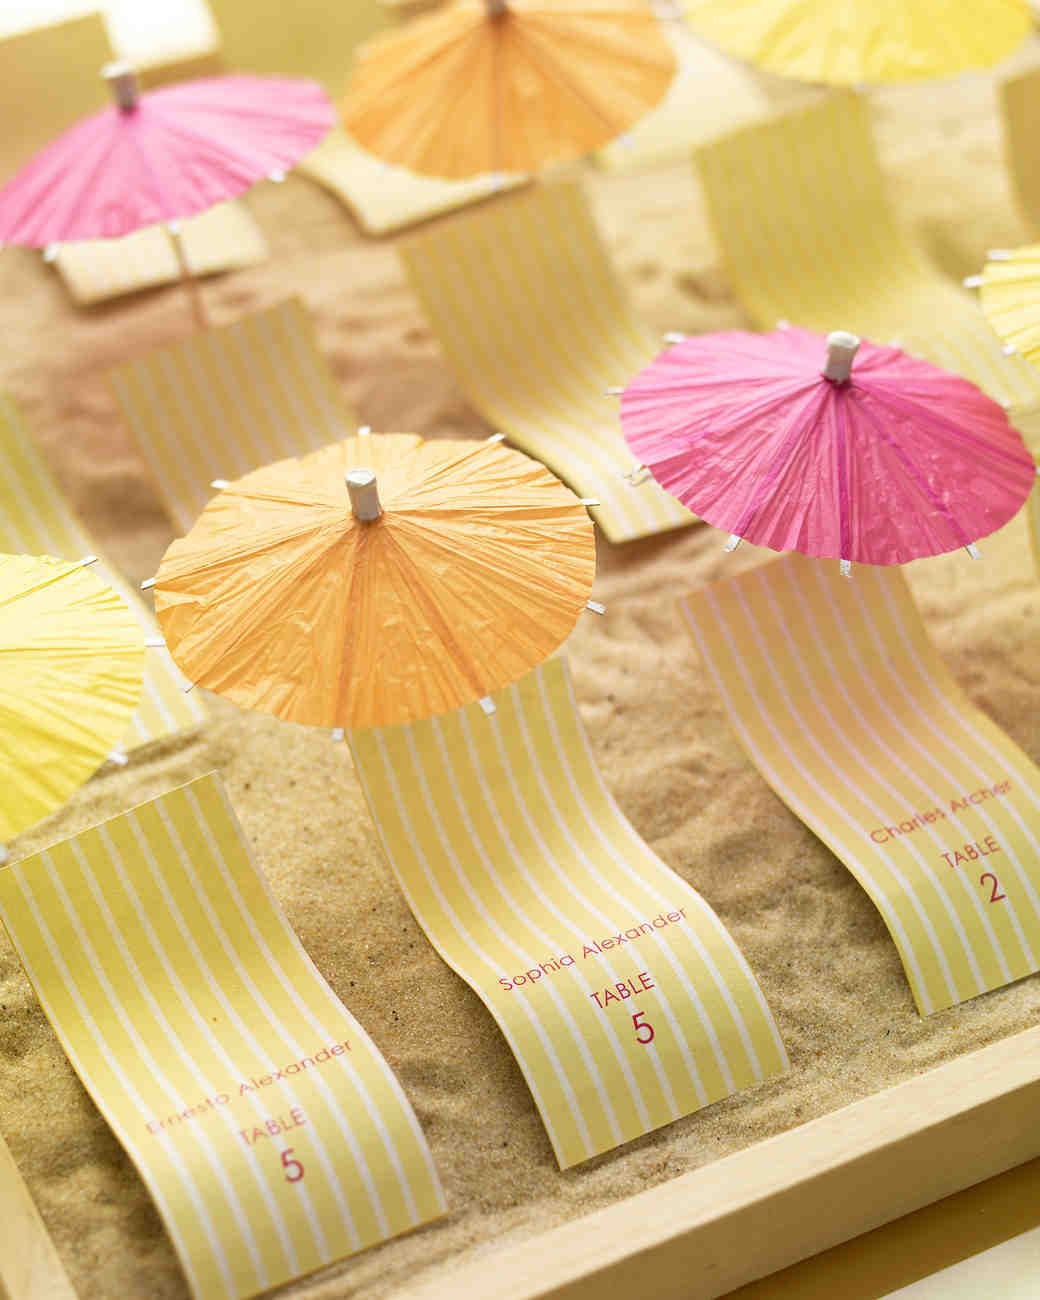 beach-escort-cards-beach-chairs-umbrellas-travel09-0615.jpg